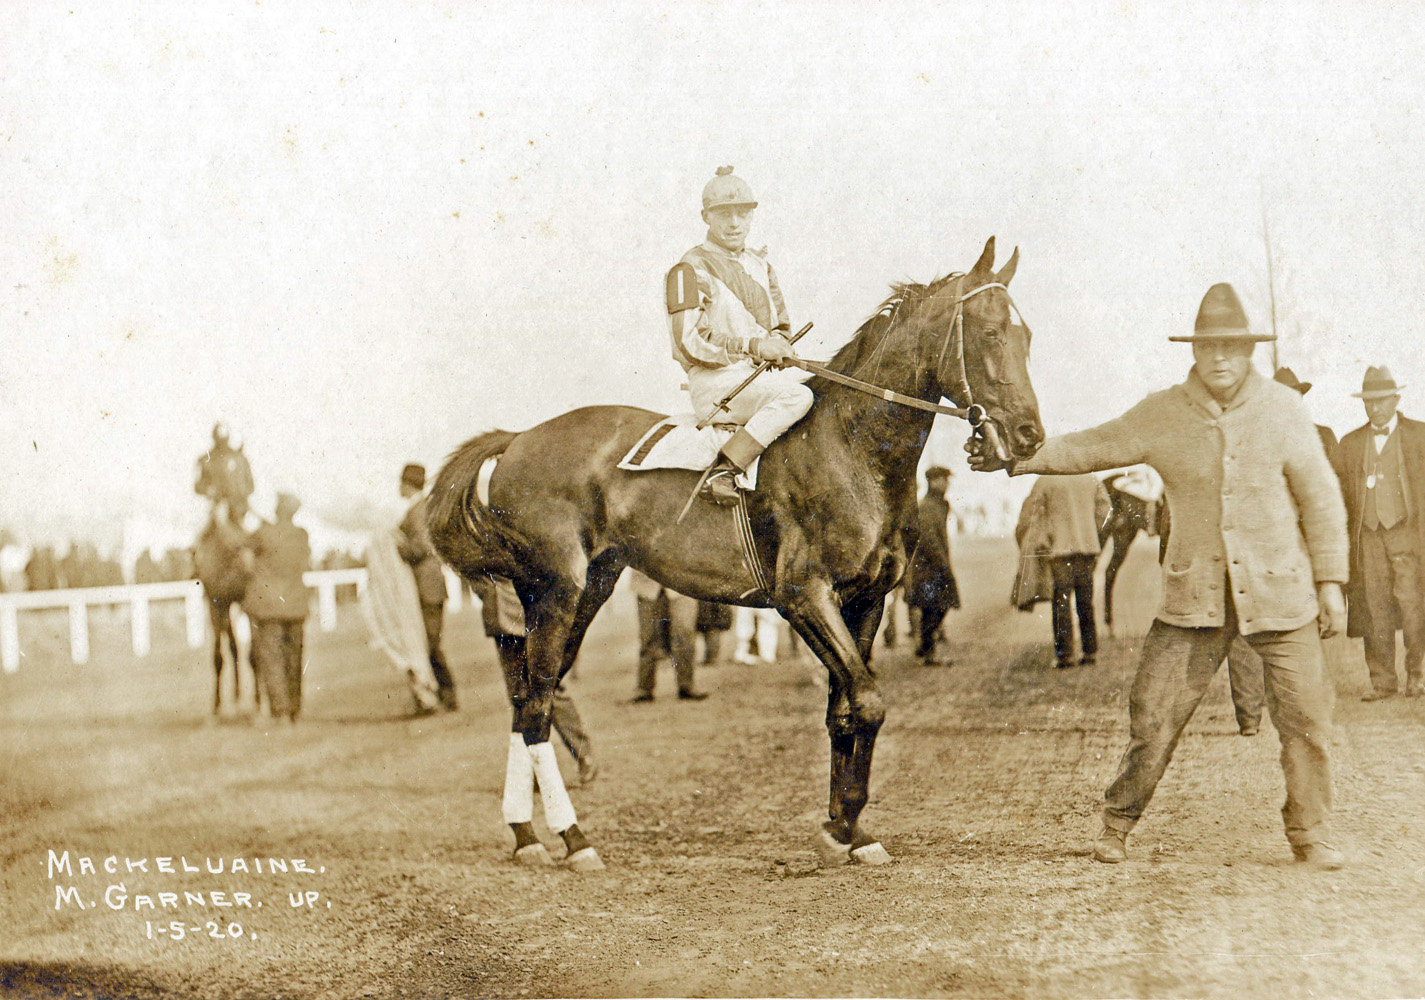 Mack Garner and Mackelvaine in the winner's circle at New Orleans (Museum Collection)